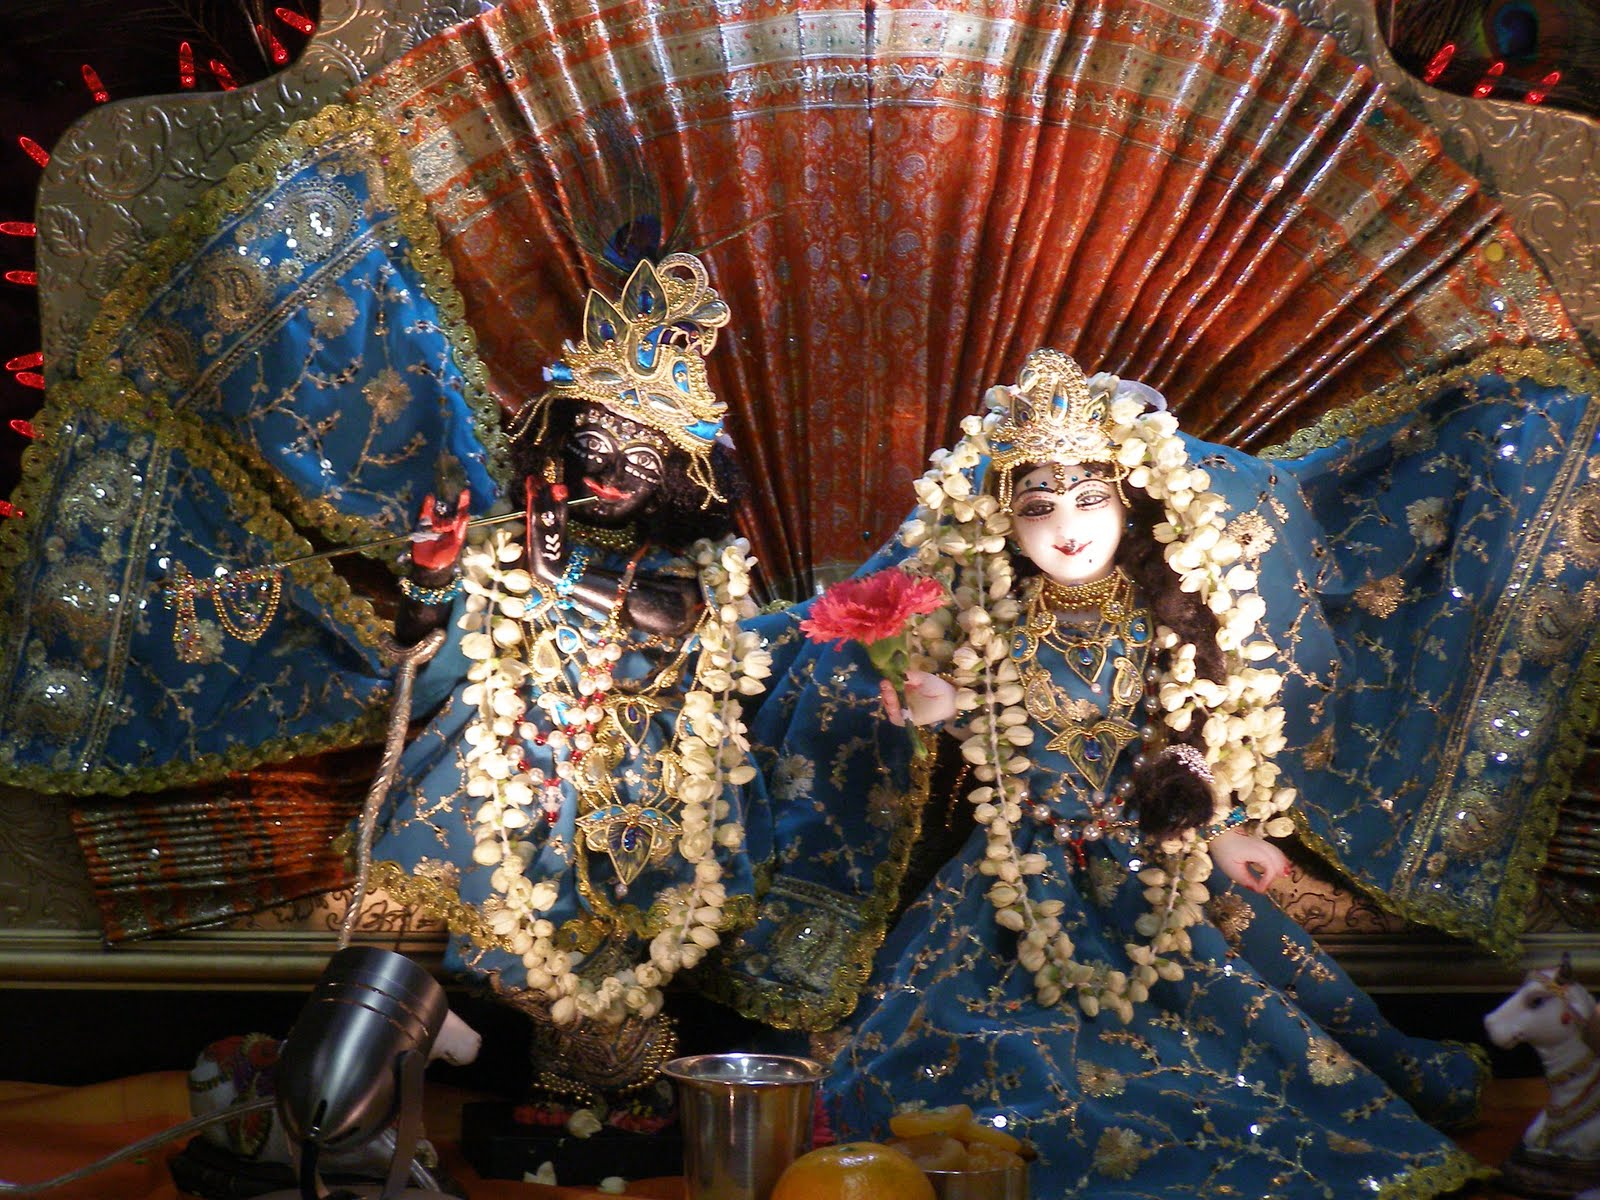 Sri Sri Radha Gopi Vallabha